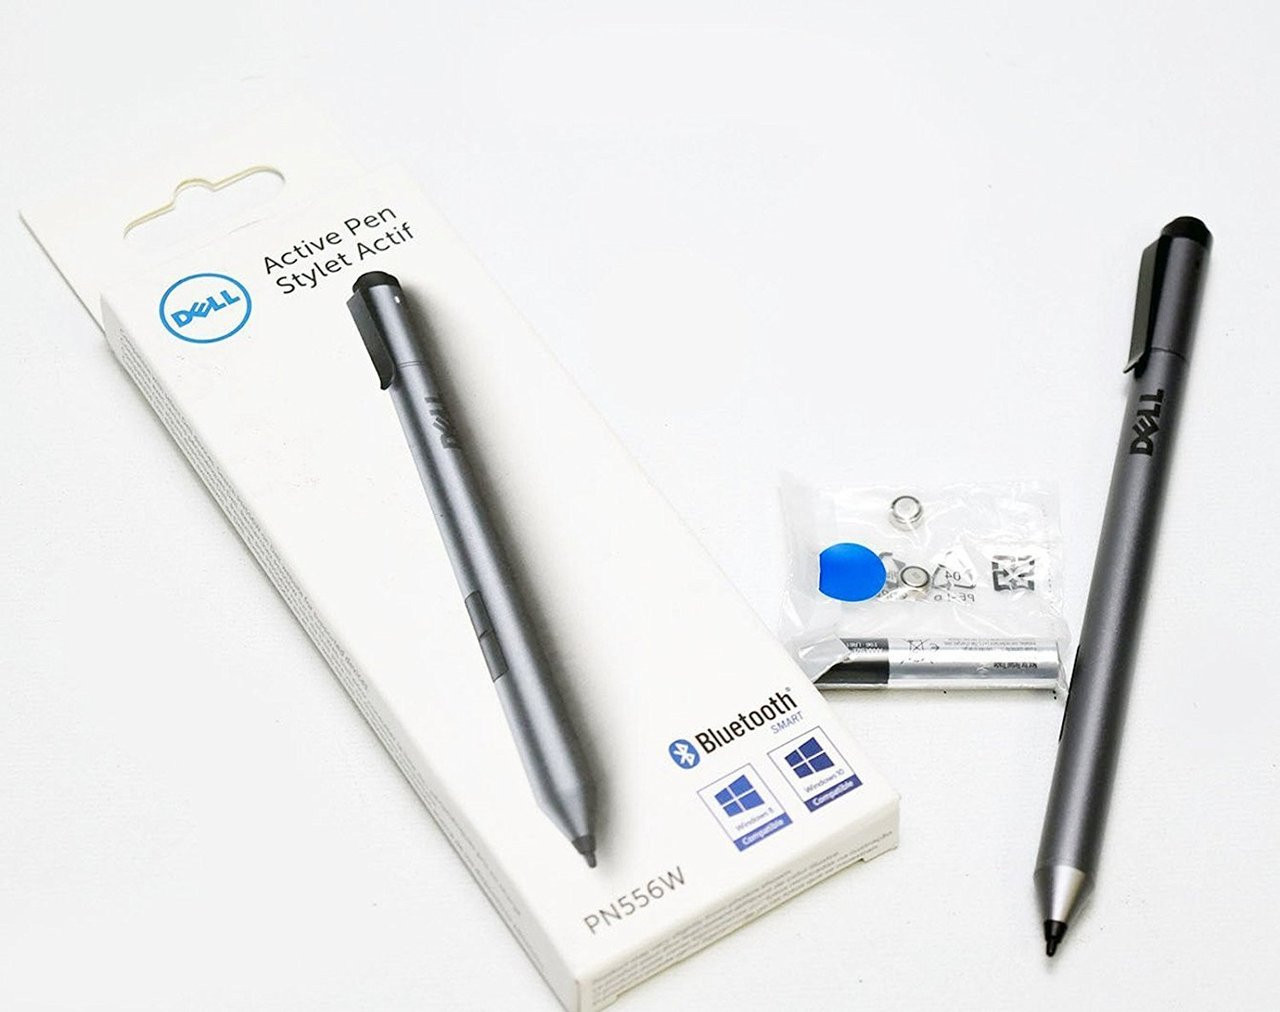 XPS New Dell Premium Stylus Active Pen PN579X for XPS 15 2-in-1 15 9575 9570